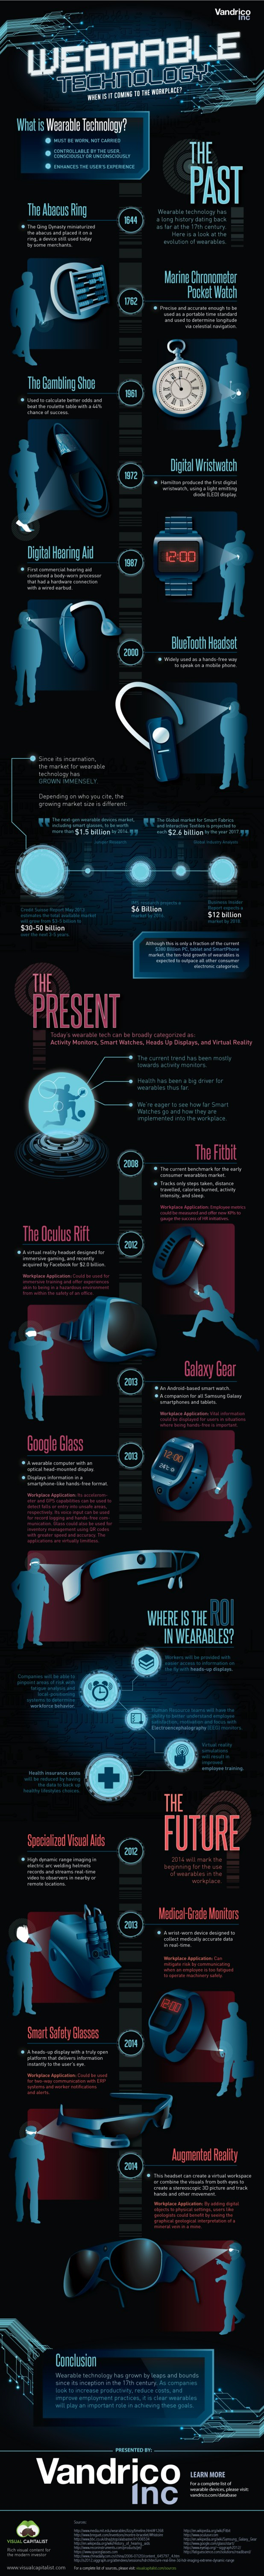 wearable-technology-infographic